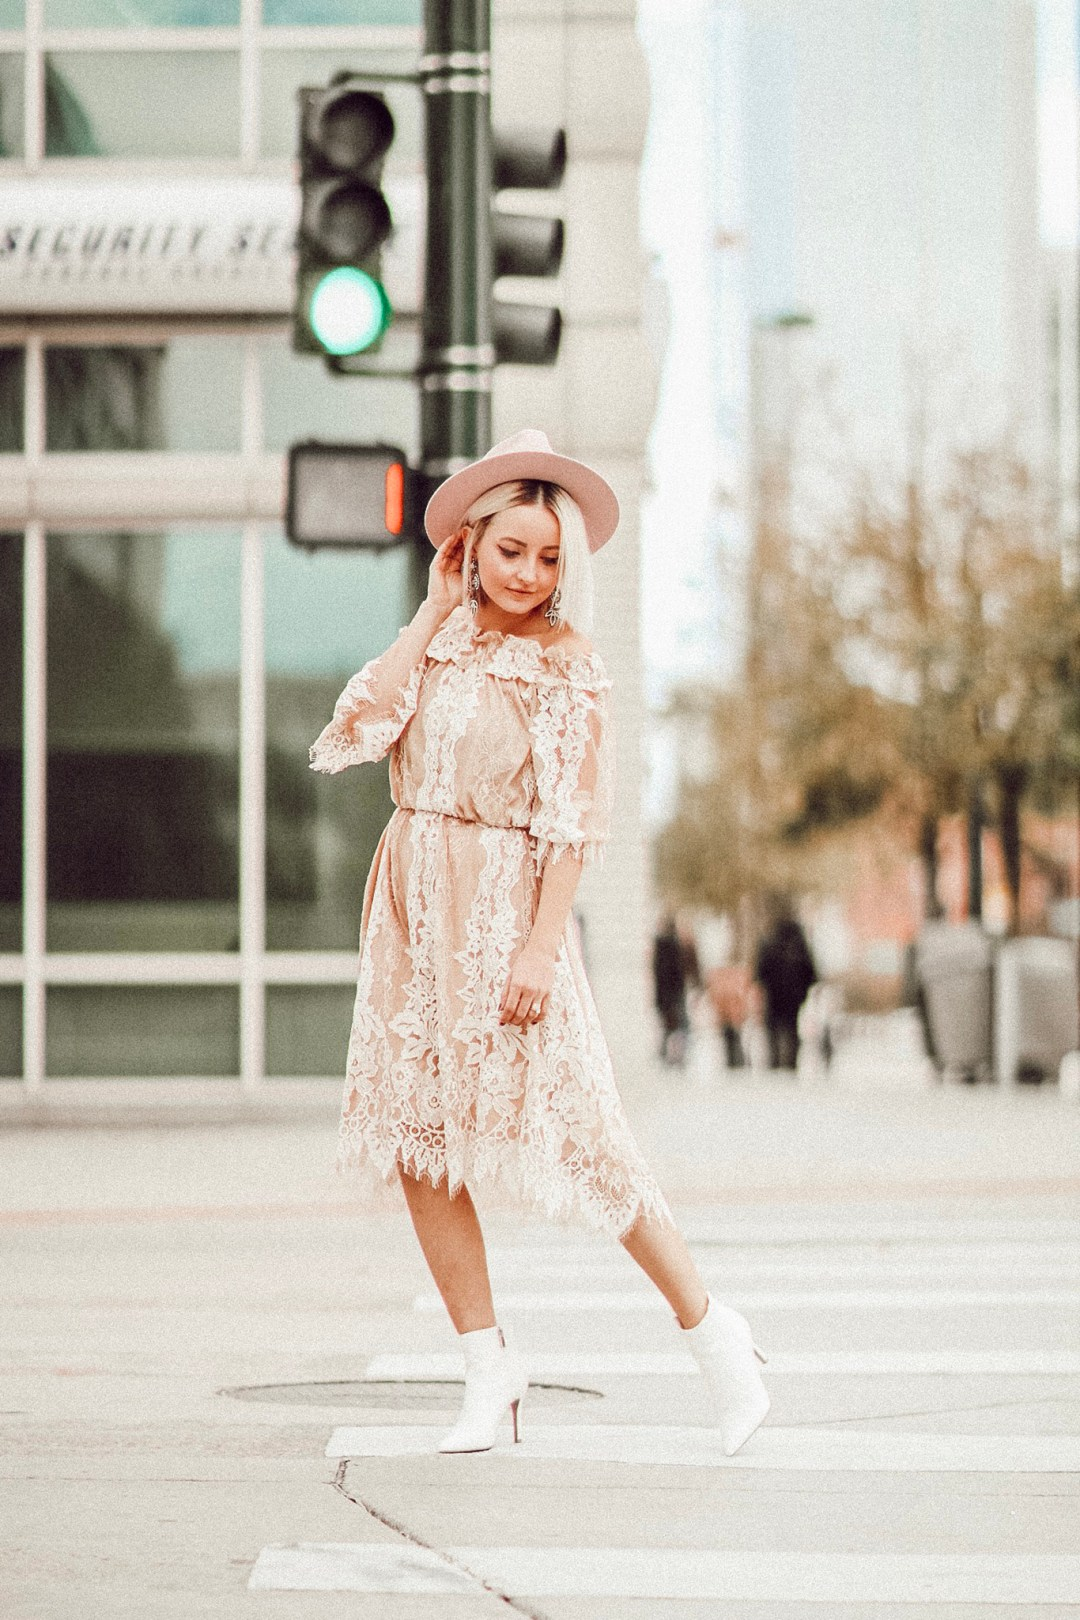 Alena Gidenko of modaprints.com shares her favorite lace dress for Fall and how she dressed it down